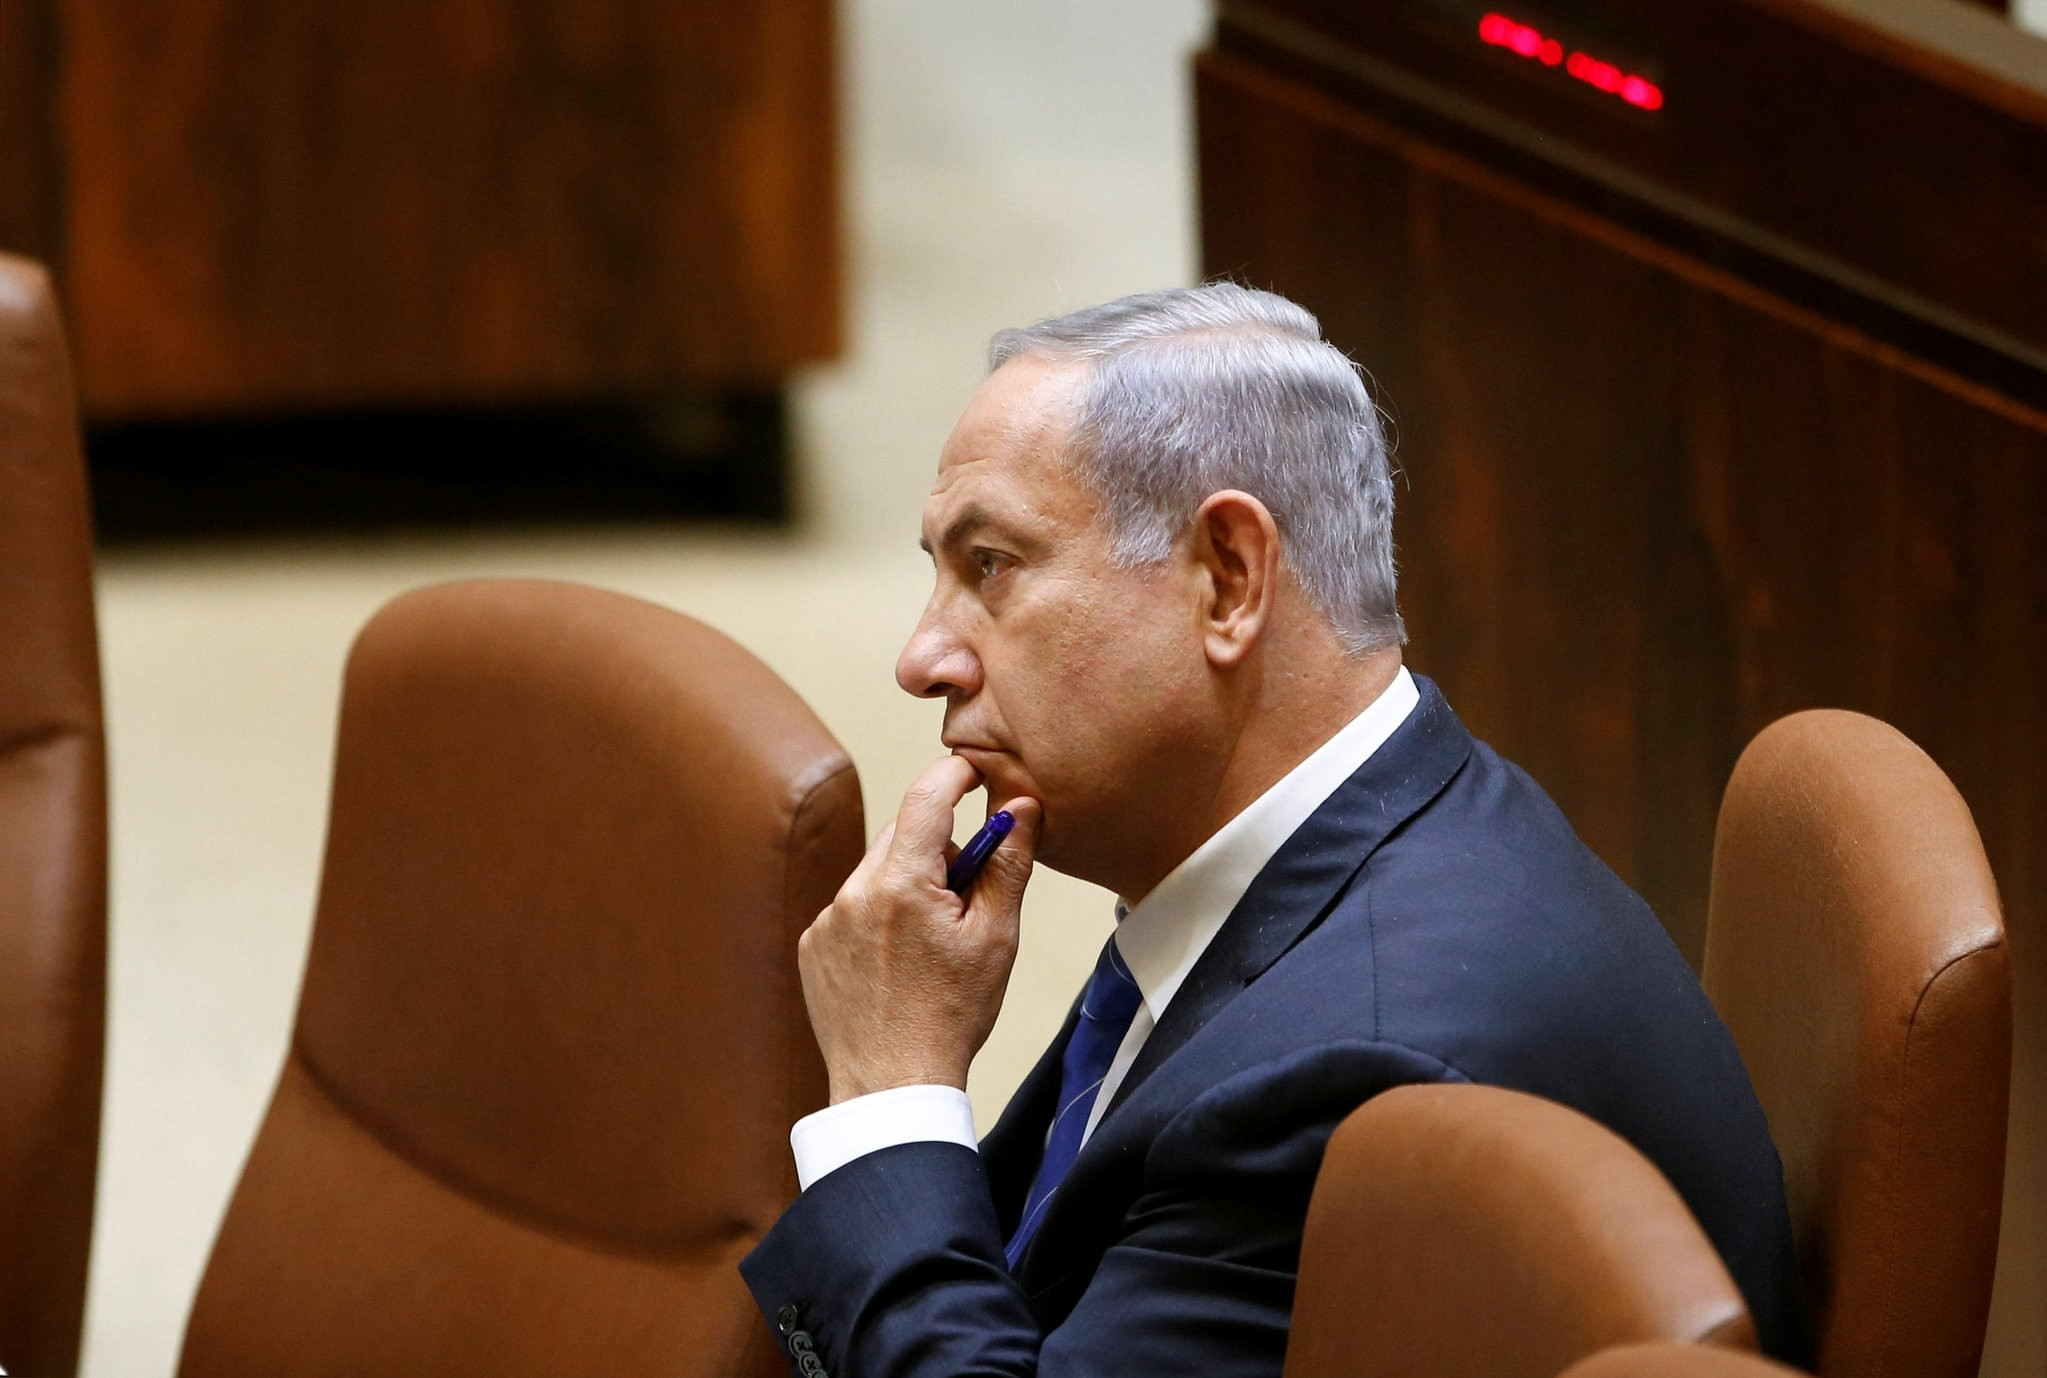 Israeli Prime Minister Benjamin Netanyahu attends a session at the Knesset, the Israeli parliament in Jerusalem, May 23, 2016. (Reuters Photo)